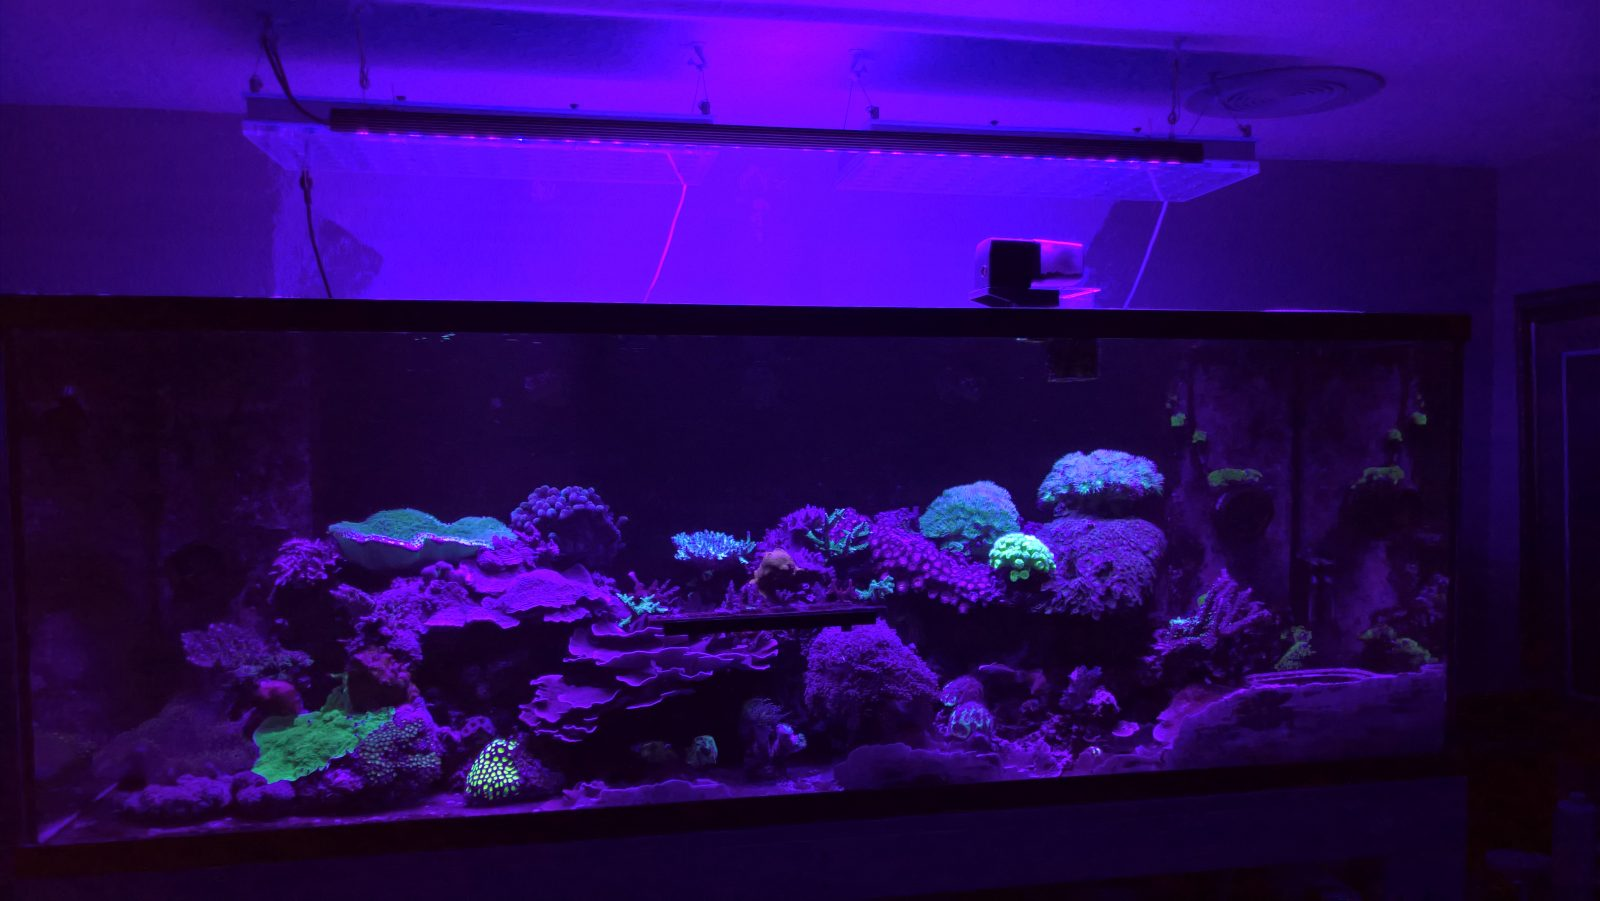 Aquarium_LED_light_violet_Purple_ UV